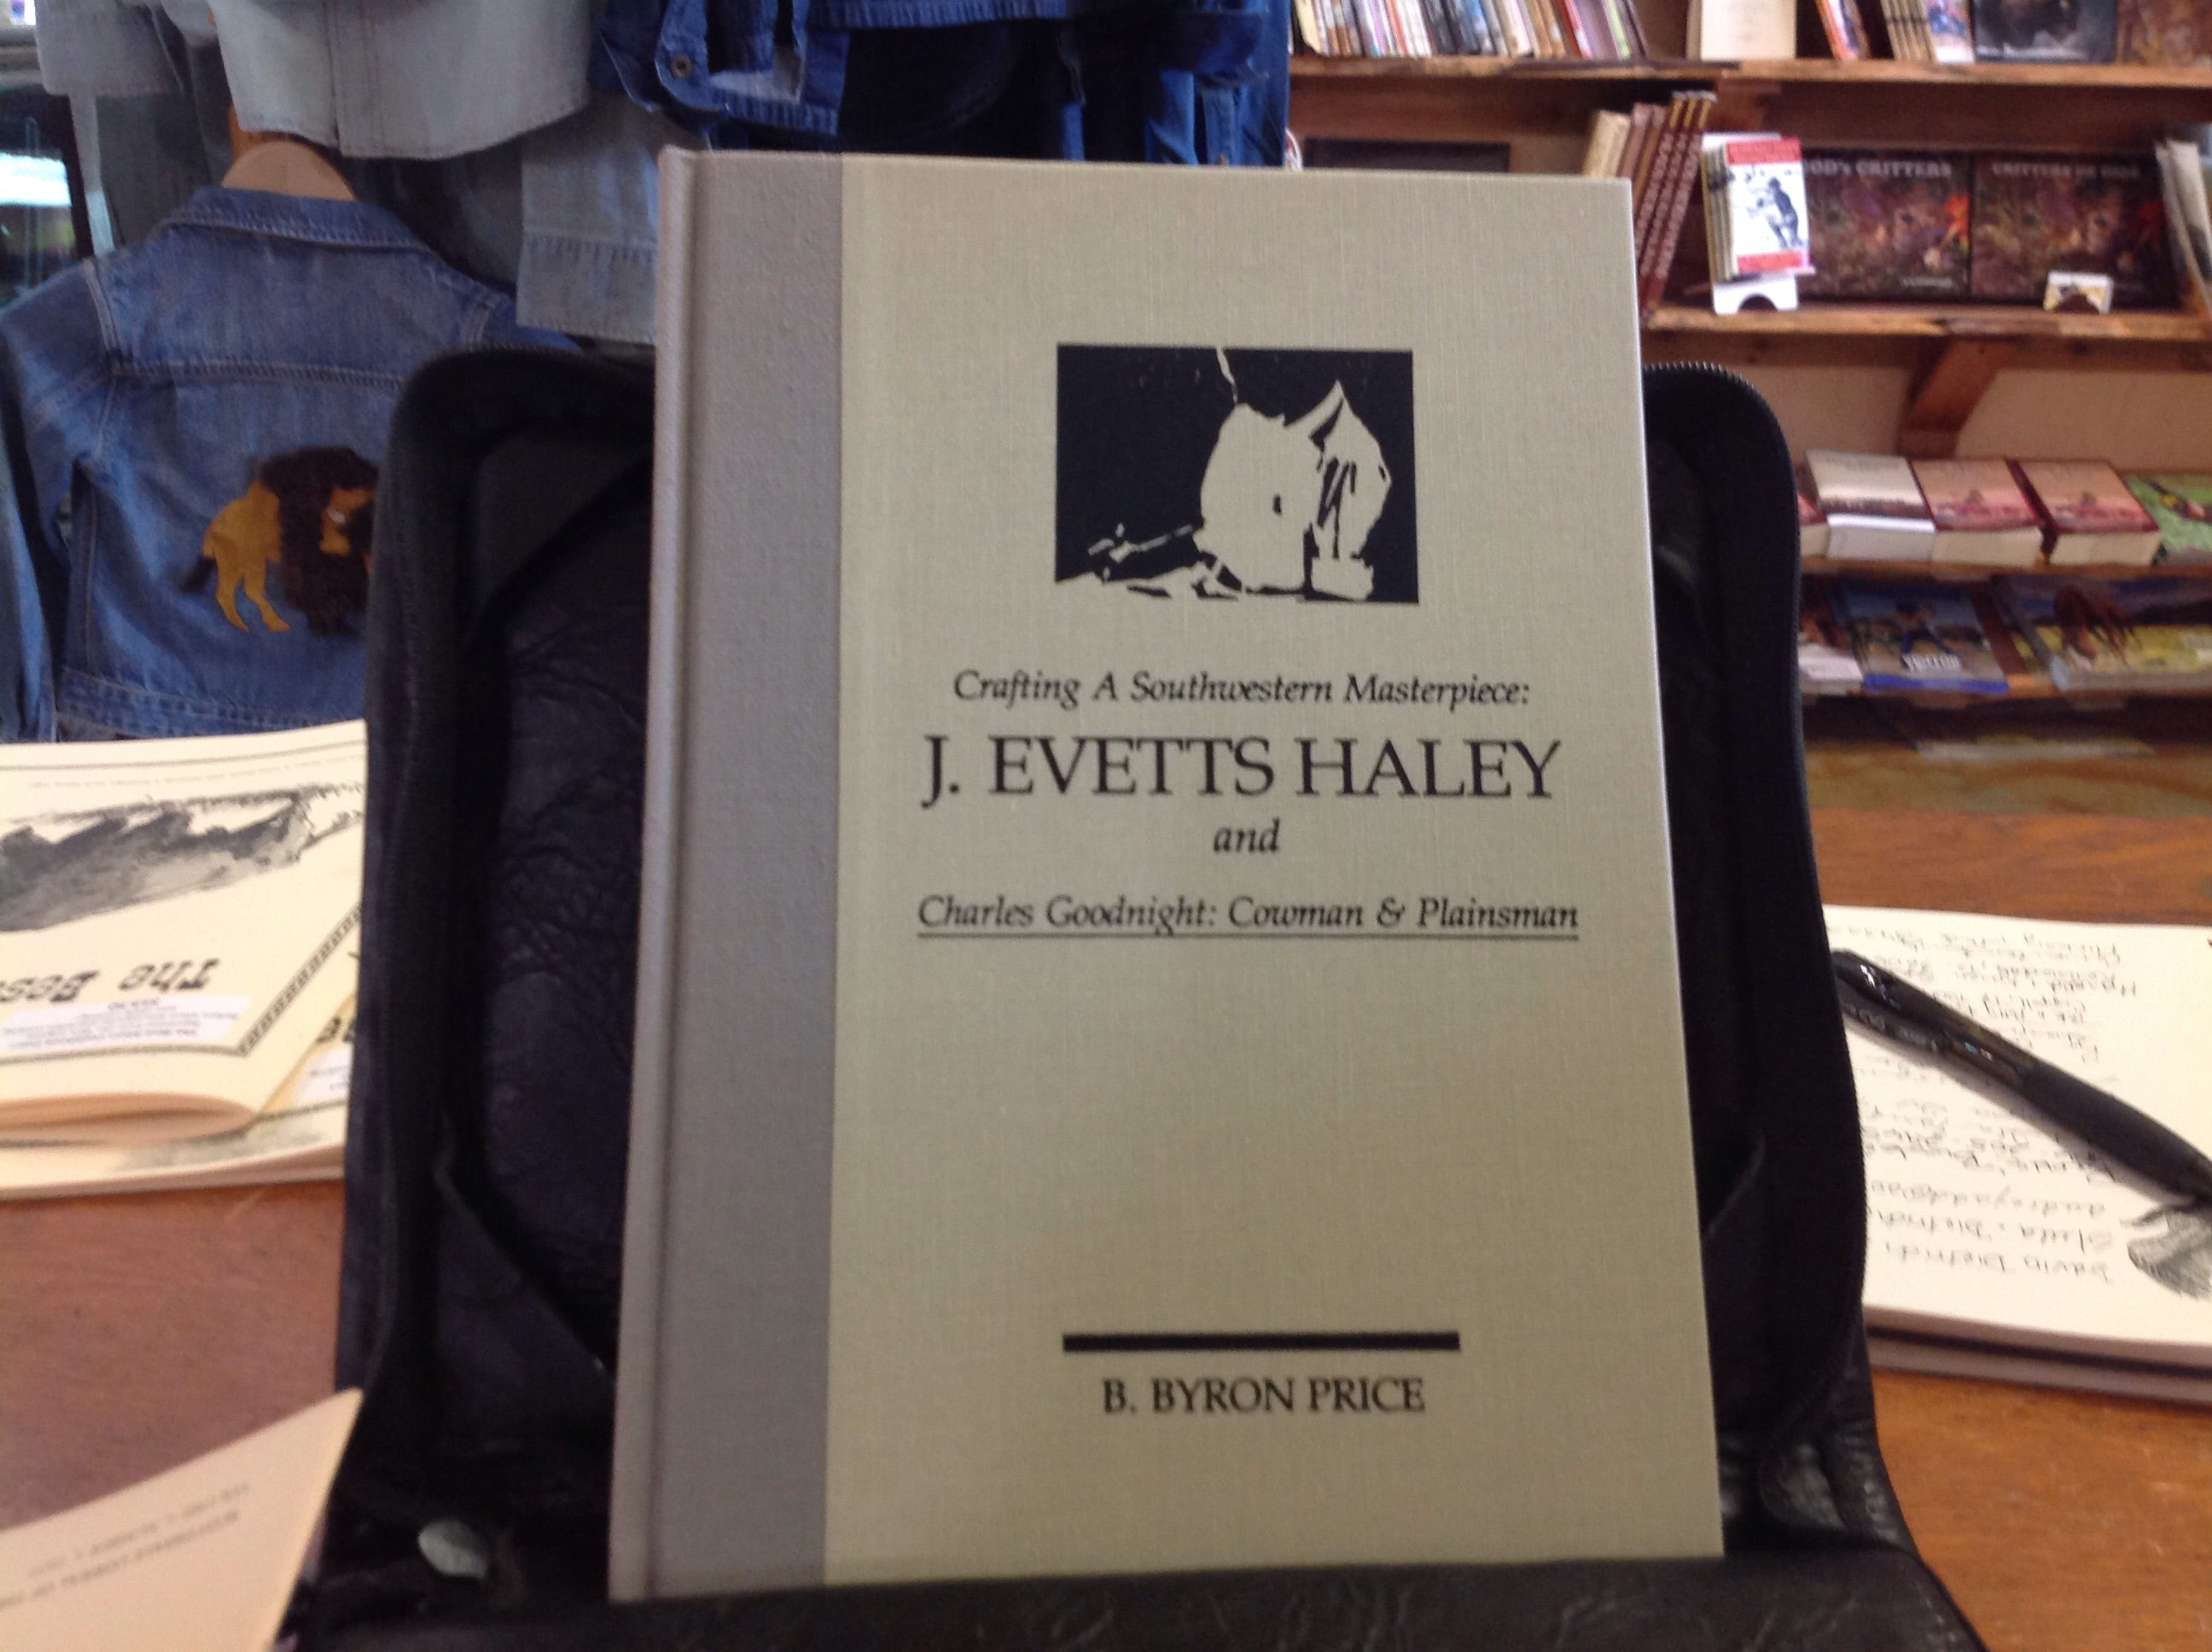 BOOKS - Crafting A Southwestern  Masterpiece J. Evetts Haley and Charles Goodnight: Cowman & Plainsman